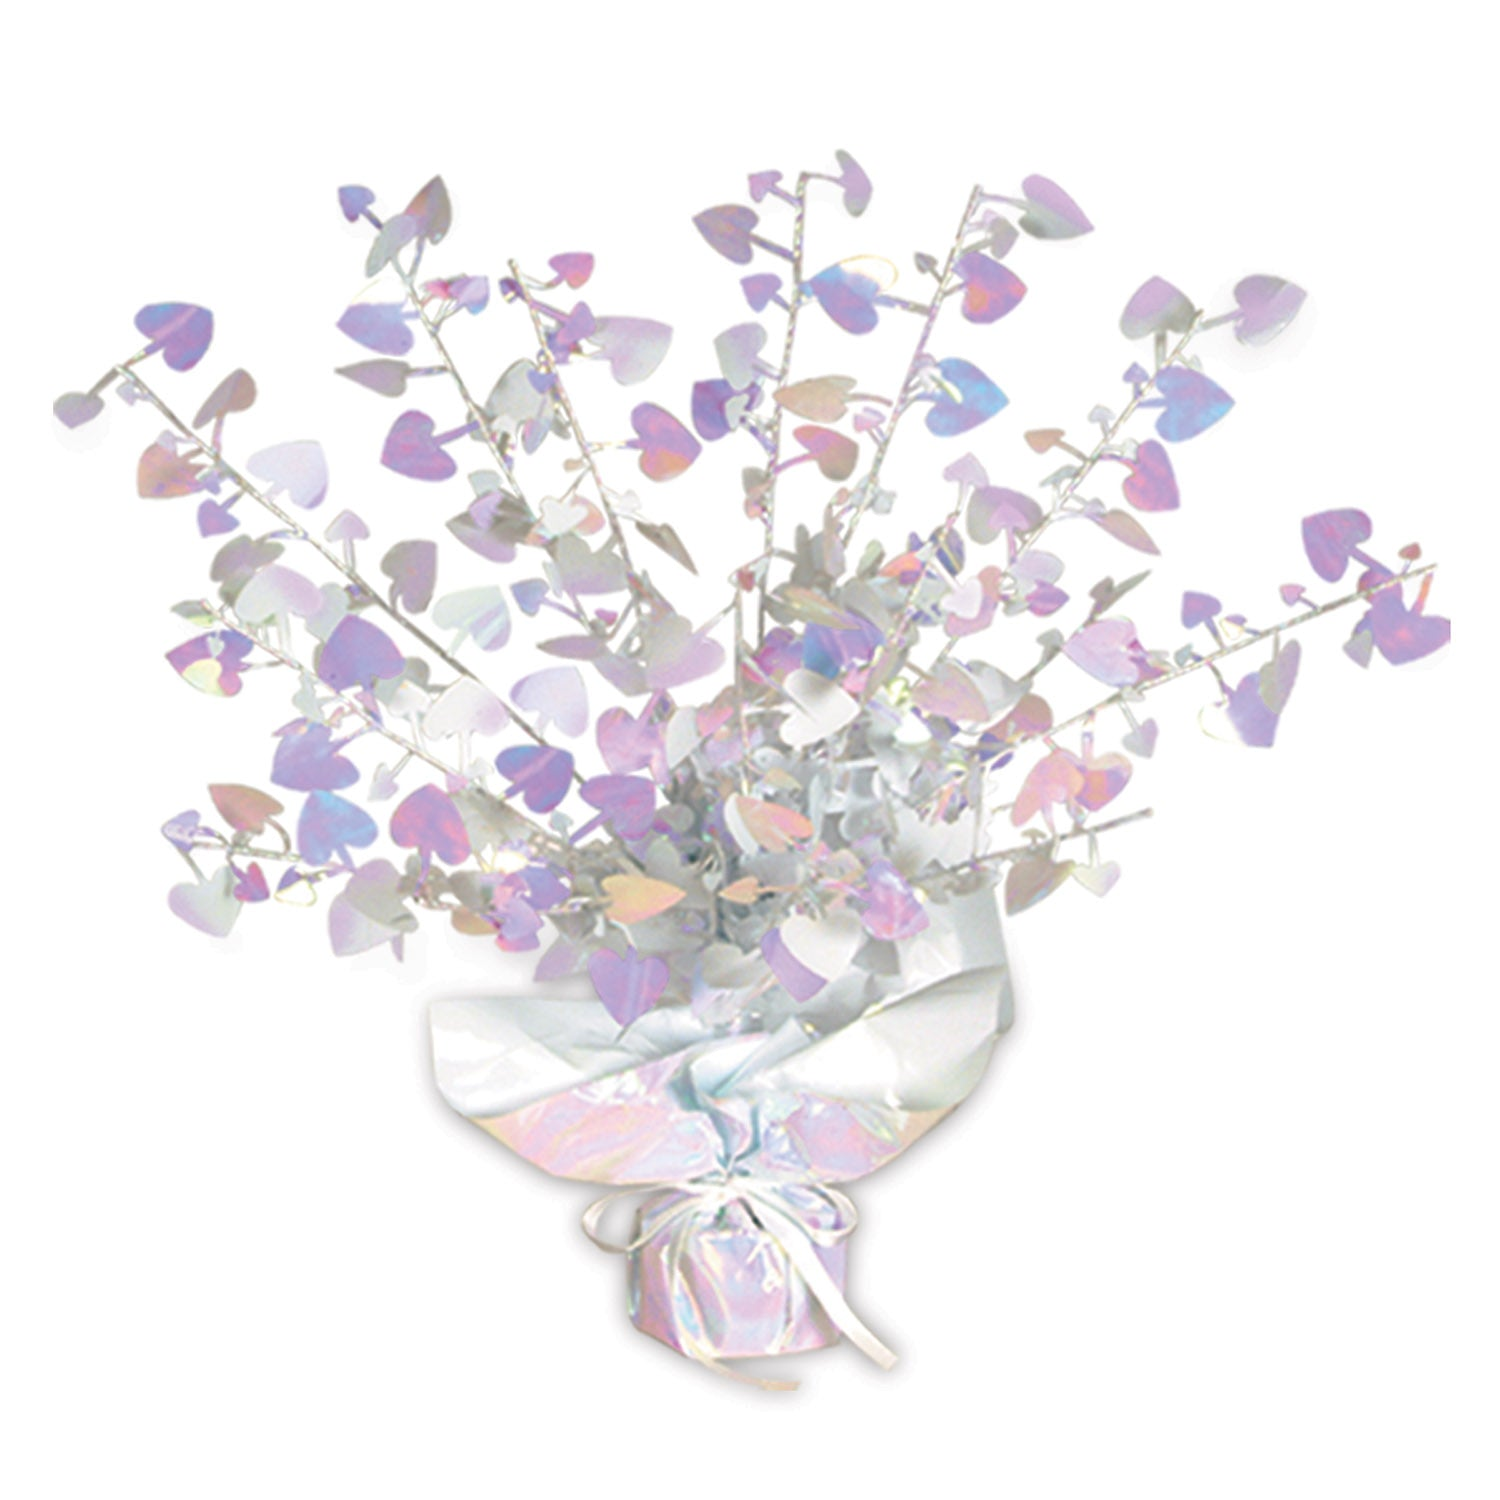 Heart Gleam 'N Burst Centerpiece, opalescent by Beistle - Valentines Day Theme Decorations